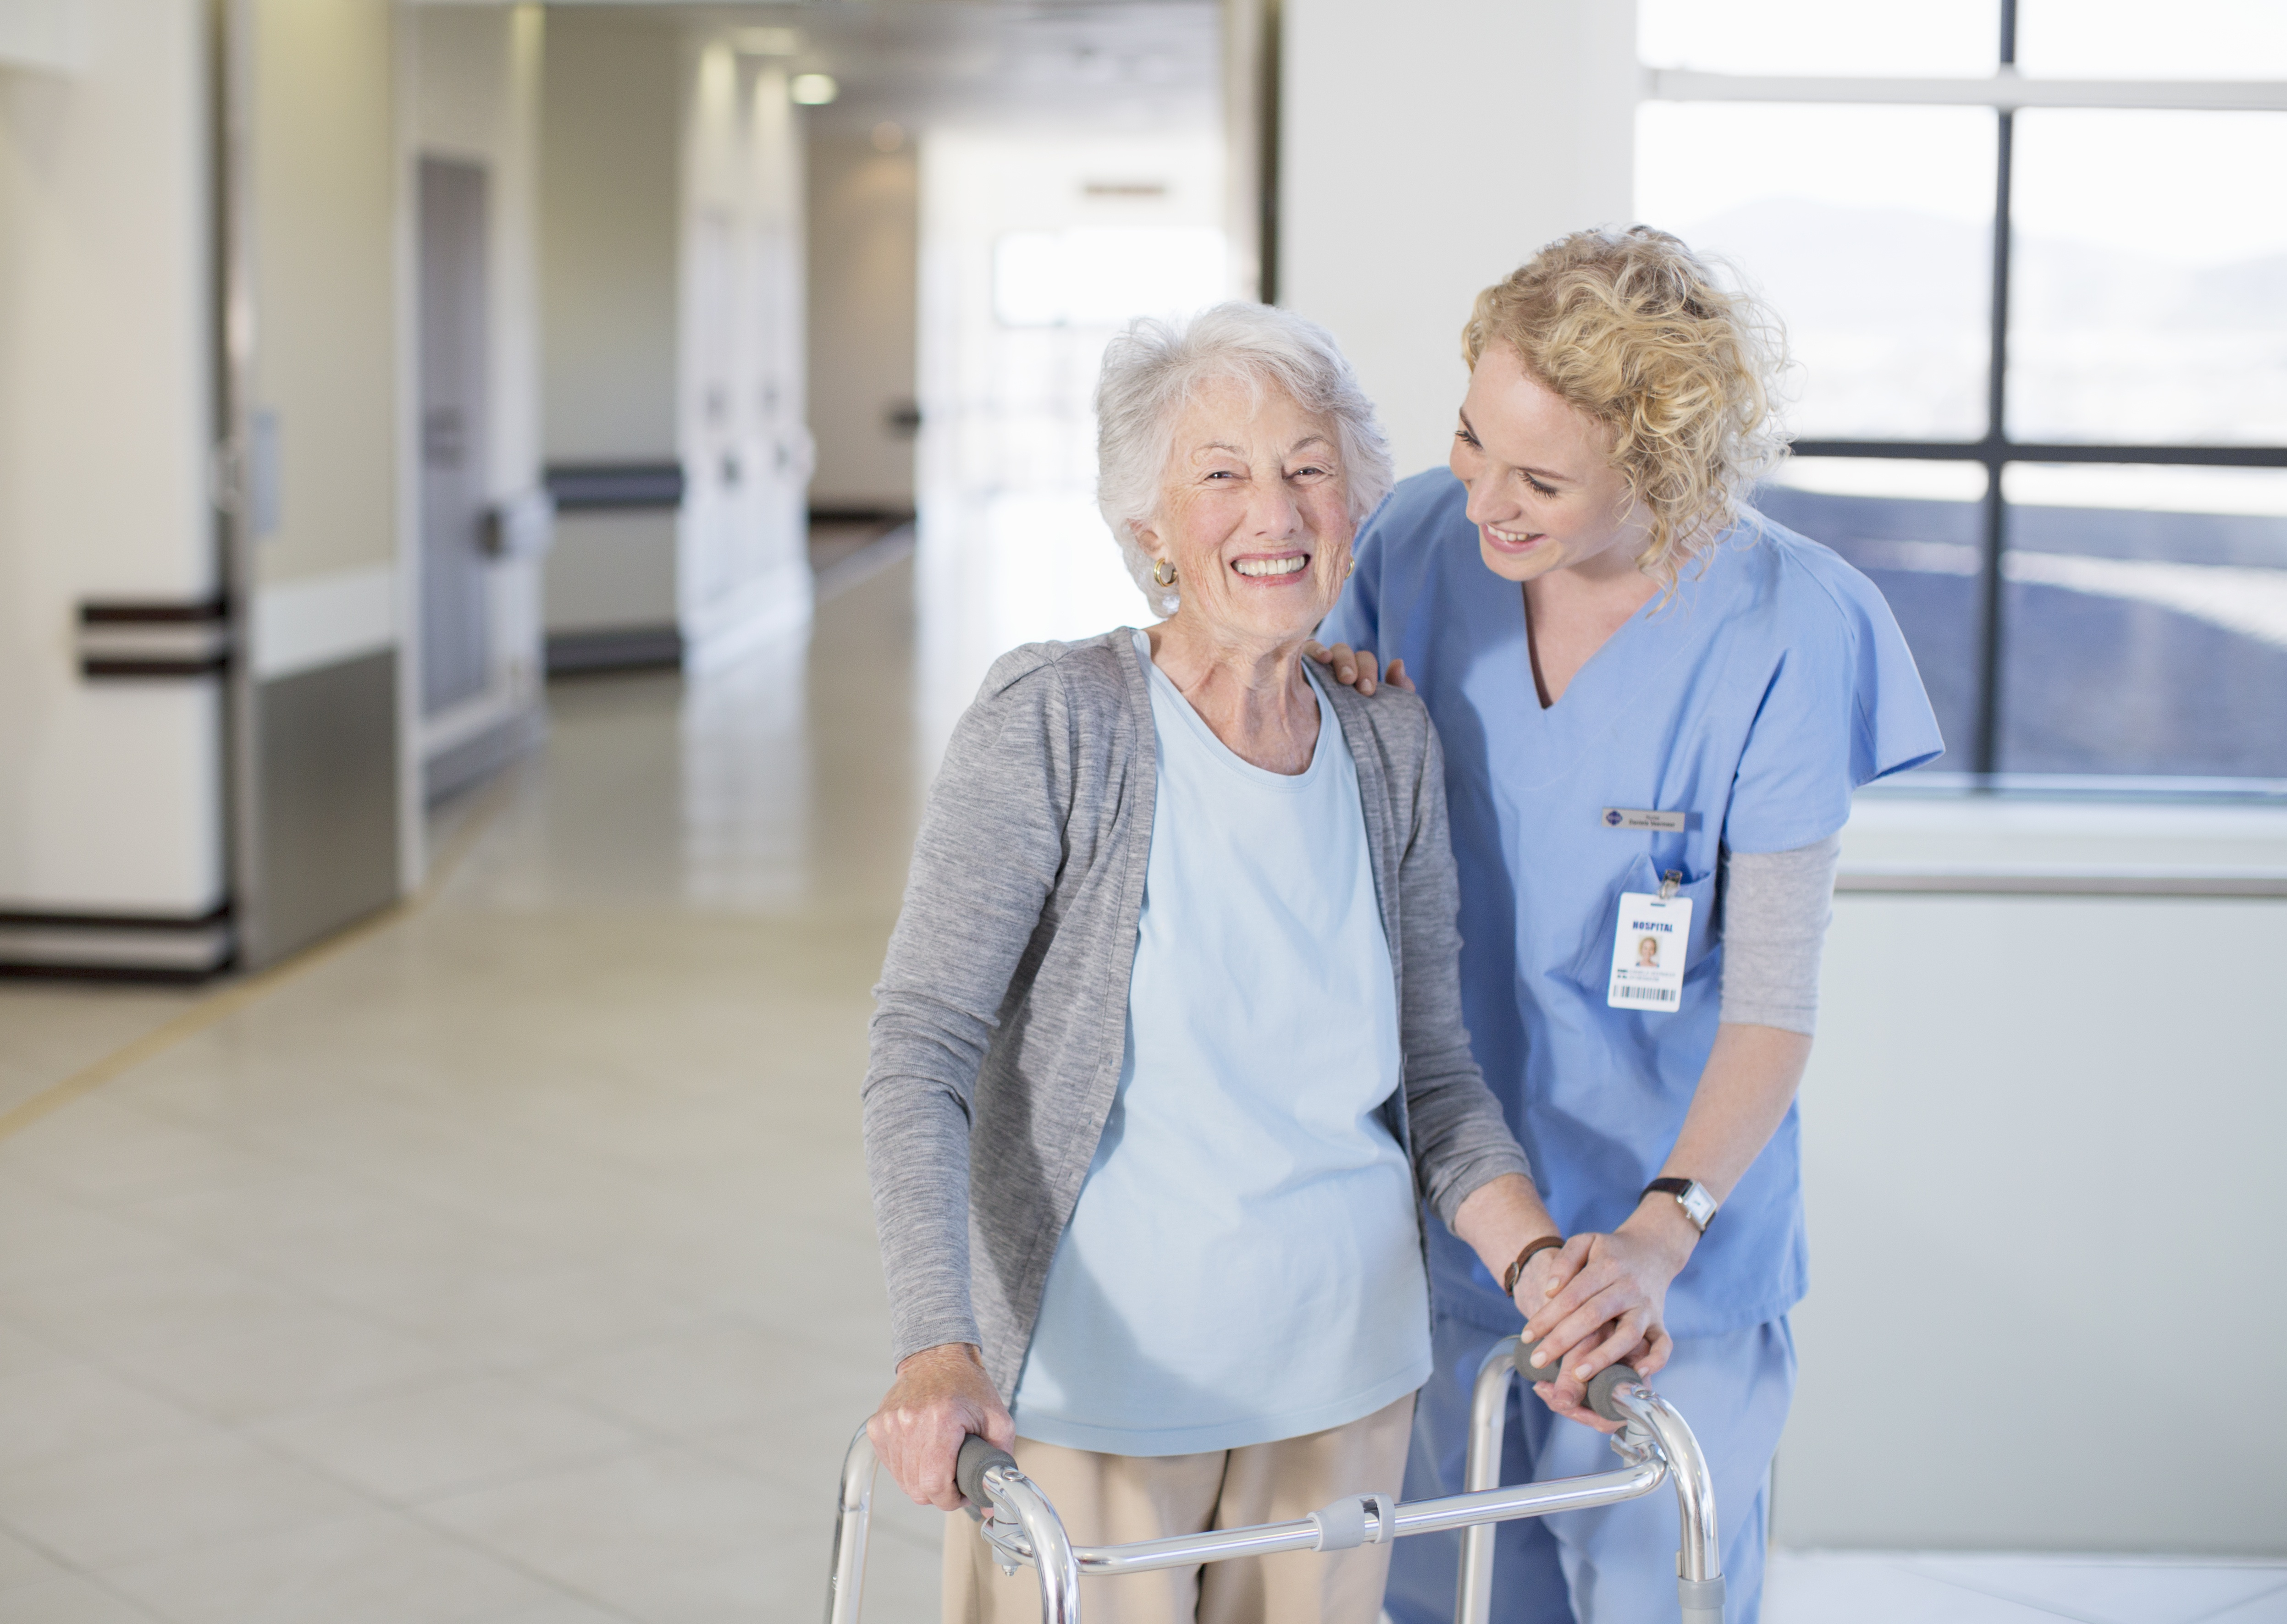 ERAS Enhanced Recovery After Surgery